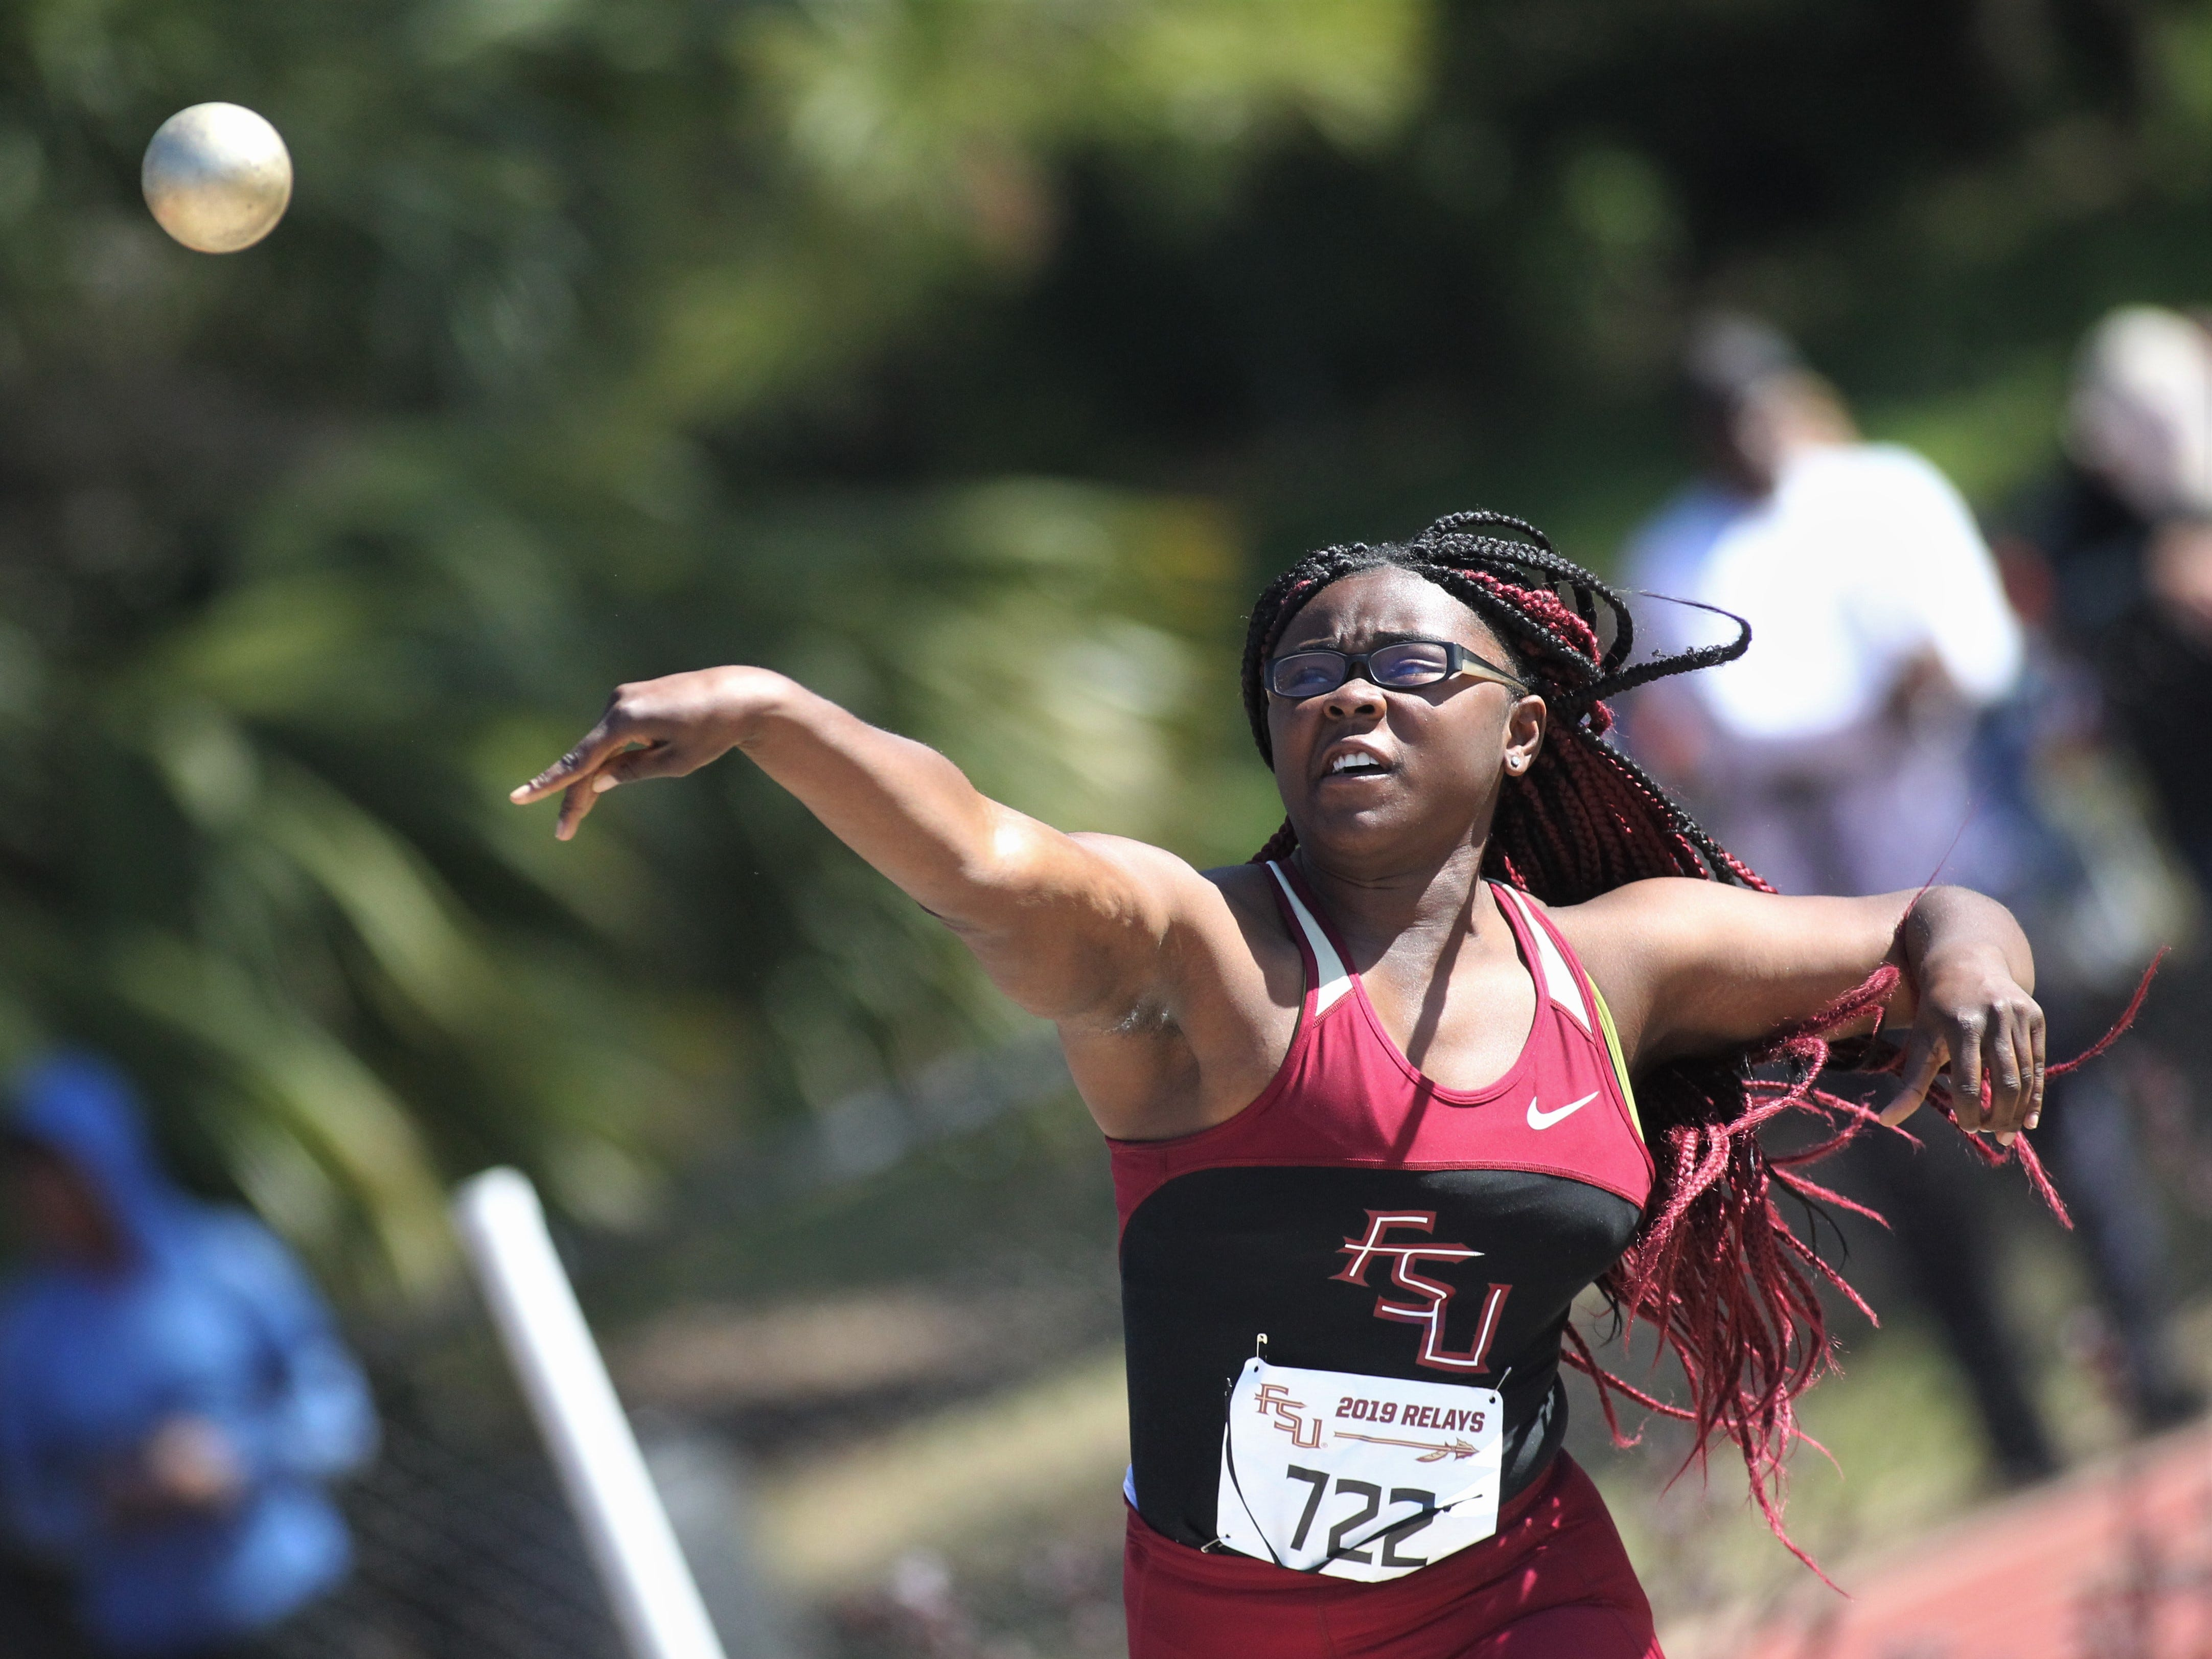 Florida High senior Antonia Thomas throws shot put during the 40th annual FSU Relays at Mike Long Track on Saturday, March 23, 2019.